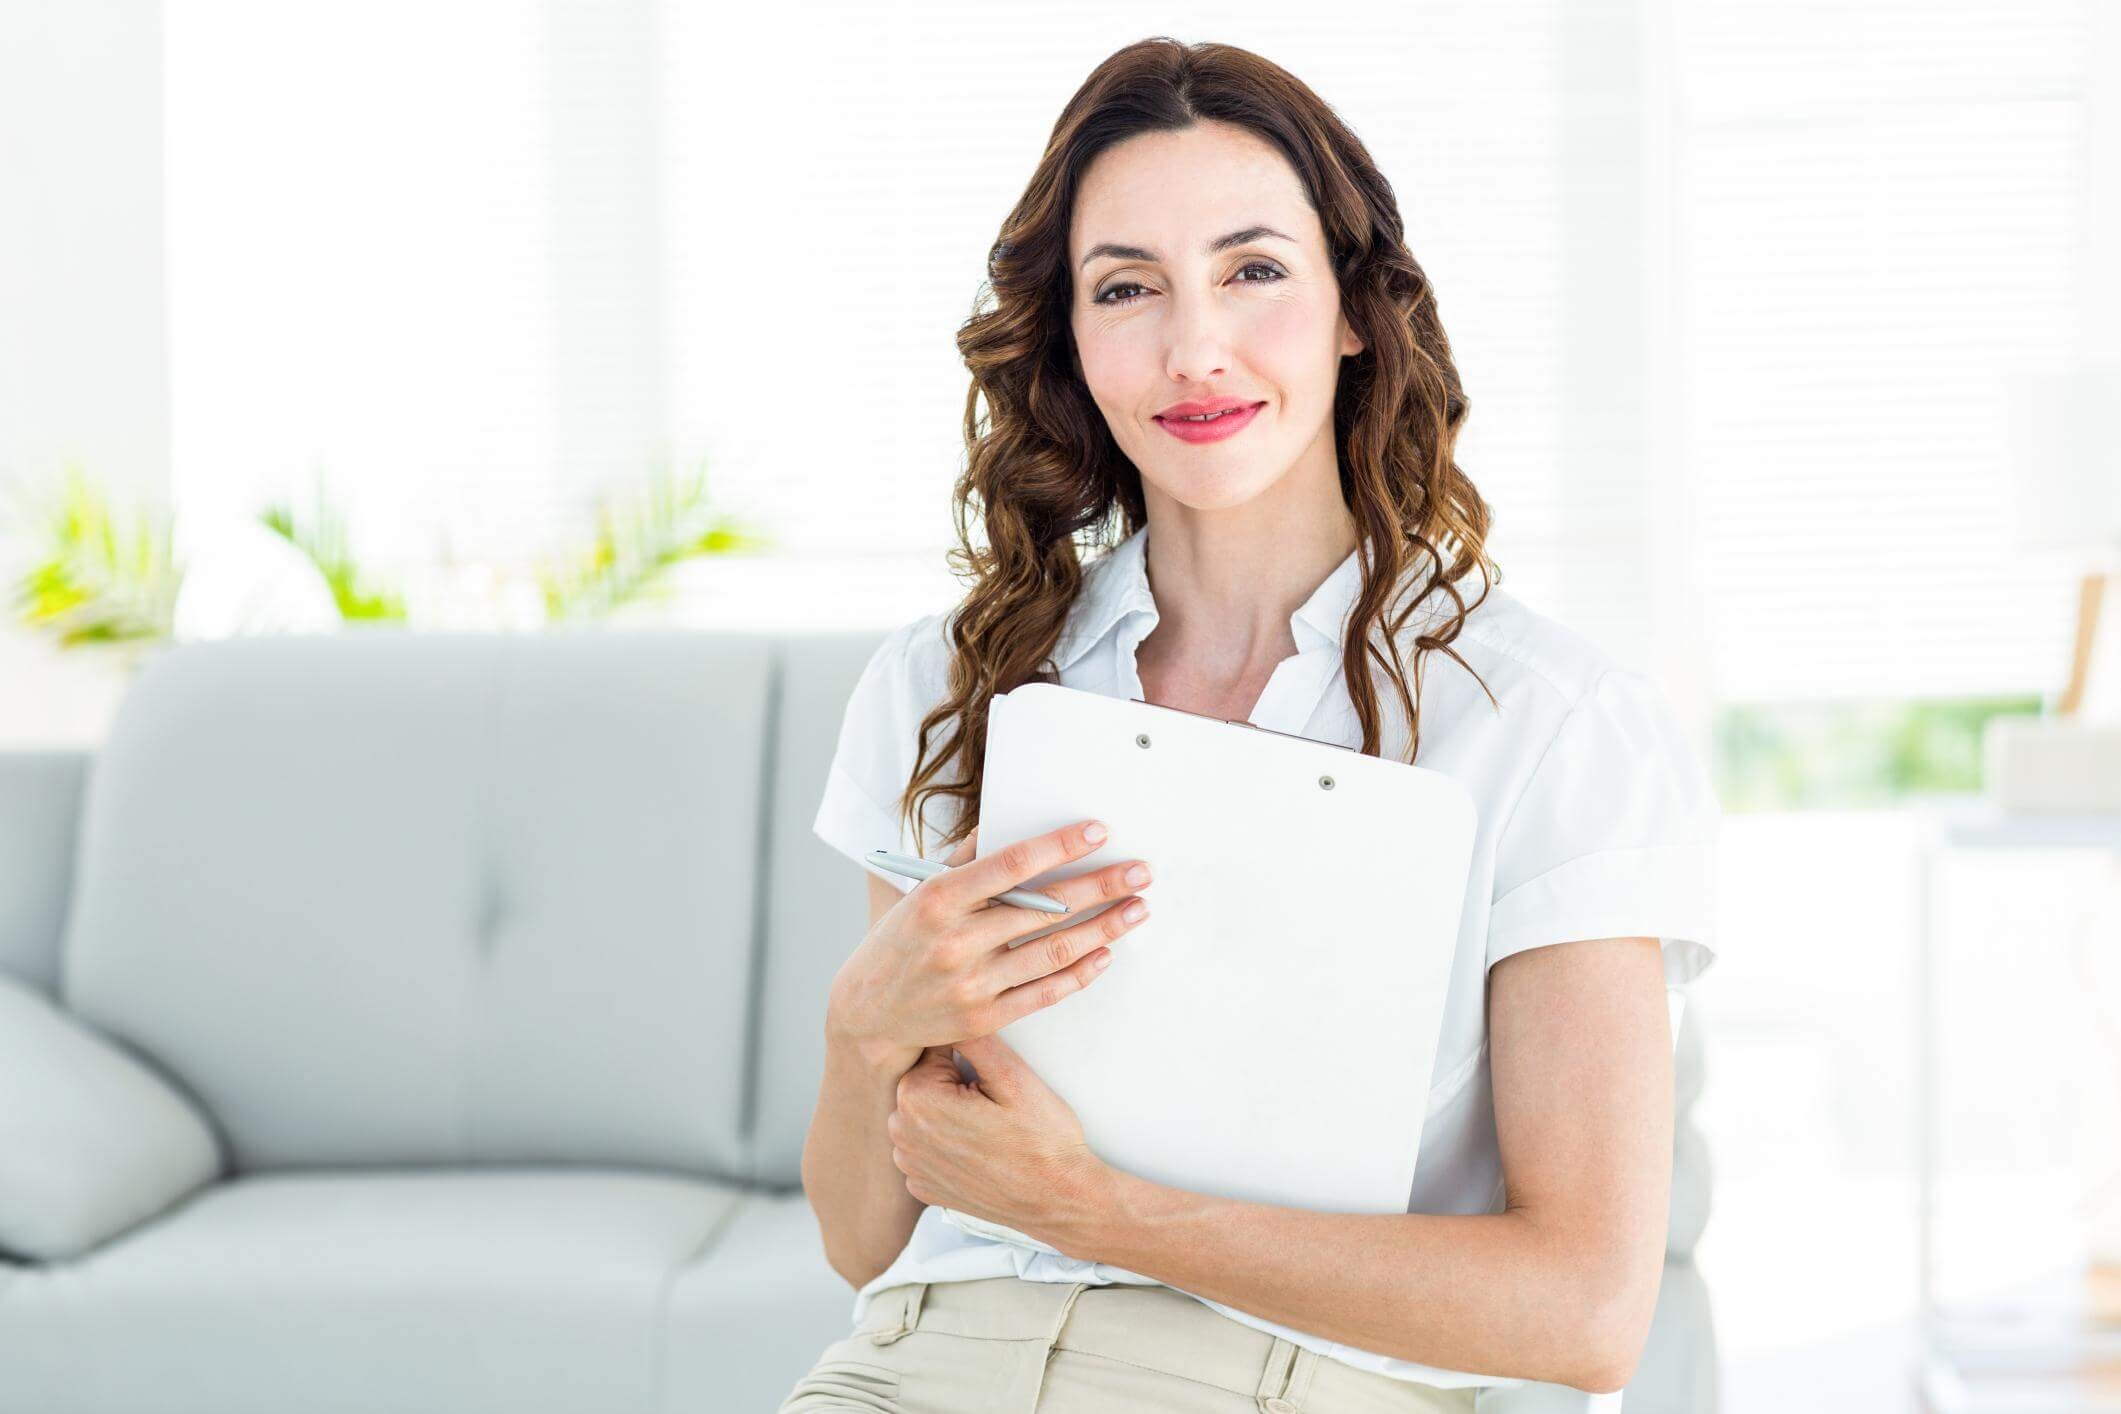 Brown haired woman holding a notepad and a pen in a bright environment and a couch on the background.